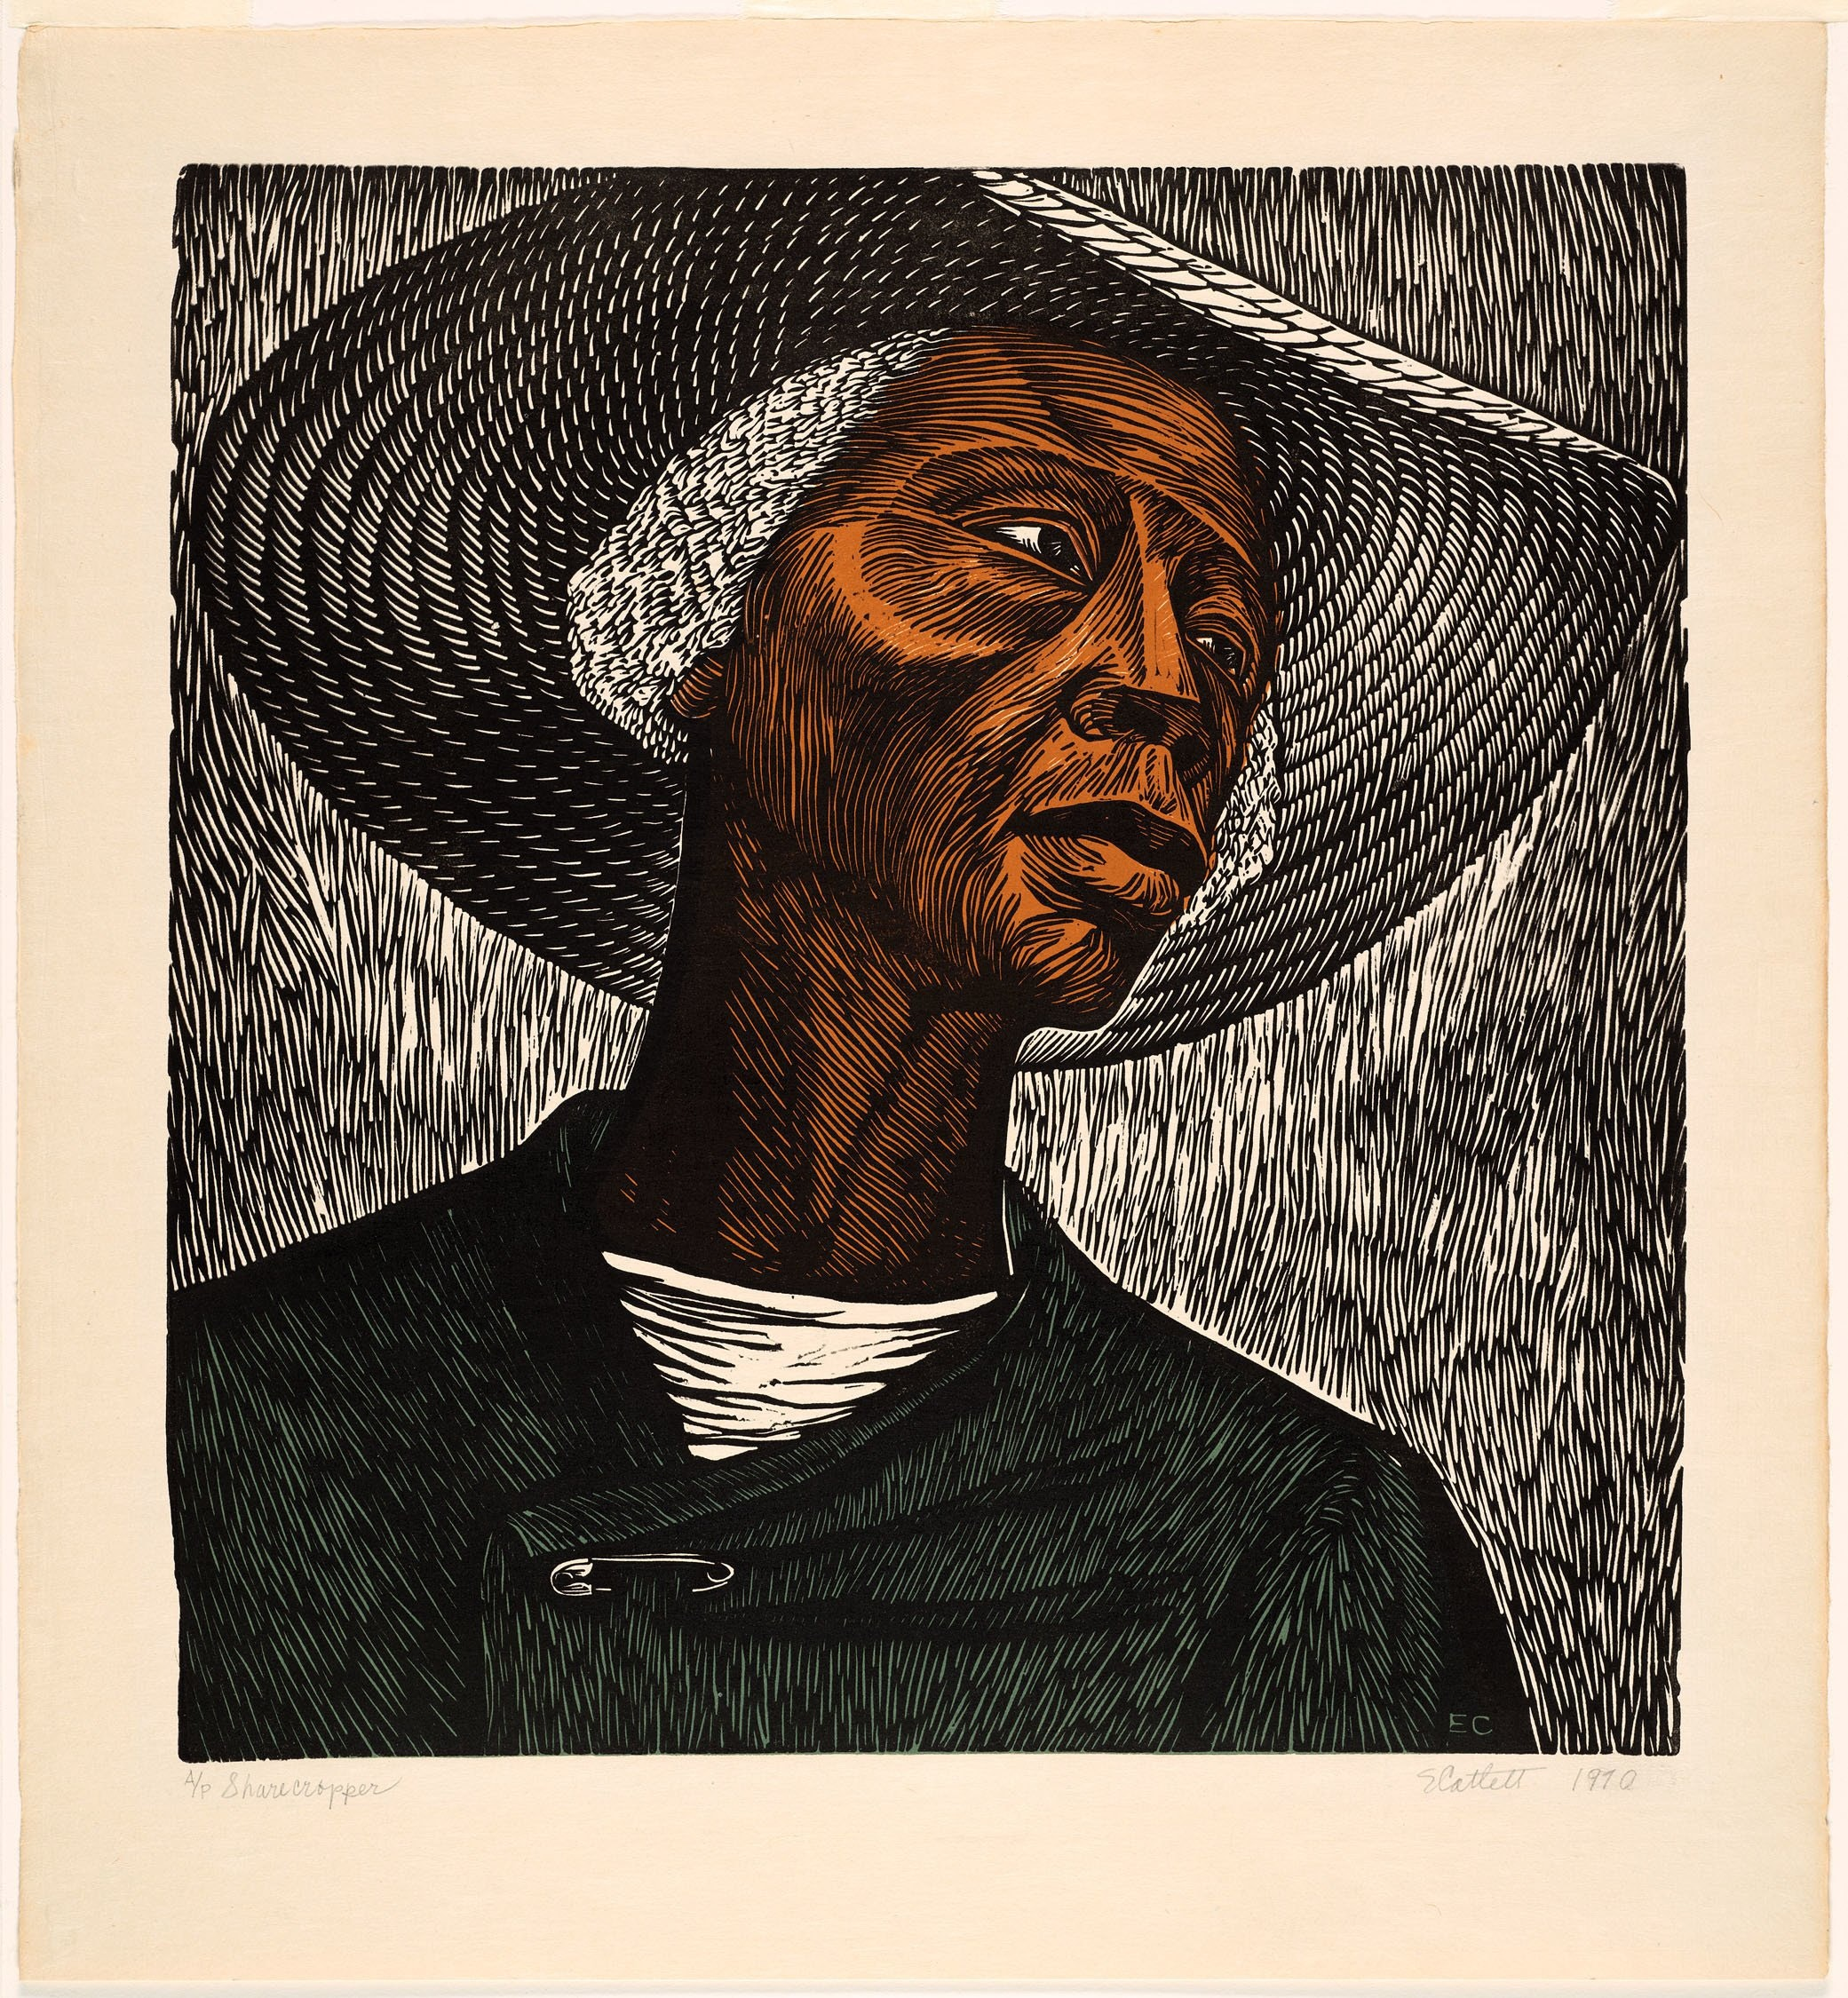 An etching of a woman wearing a hat.